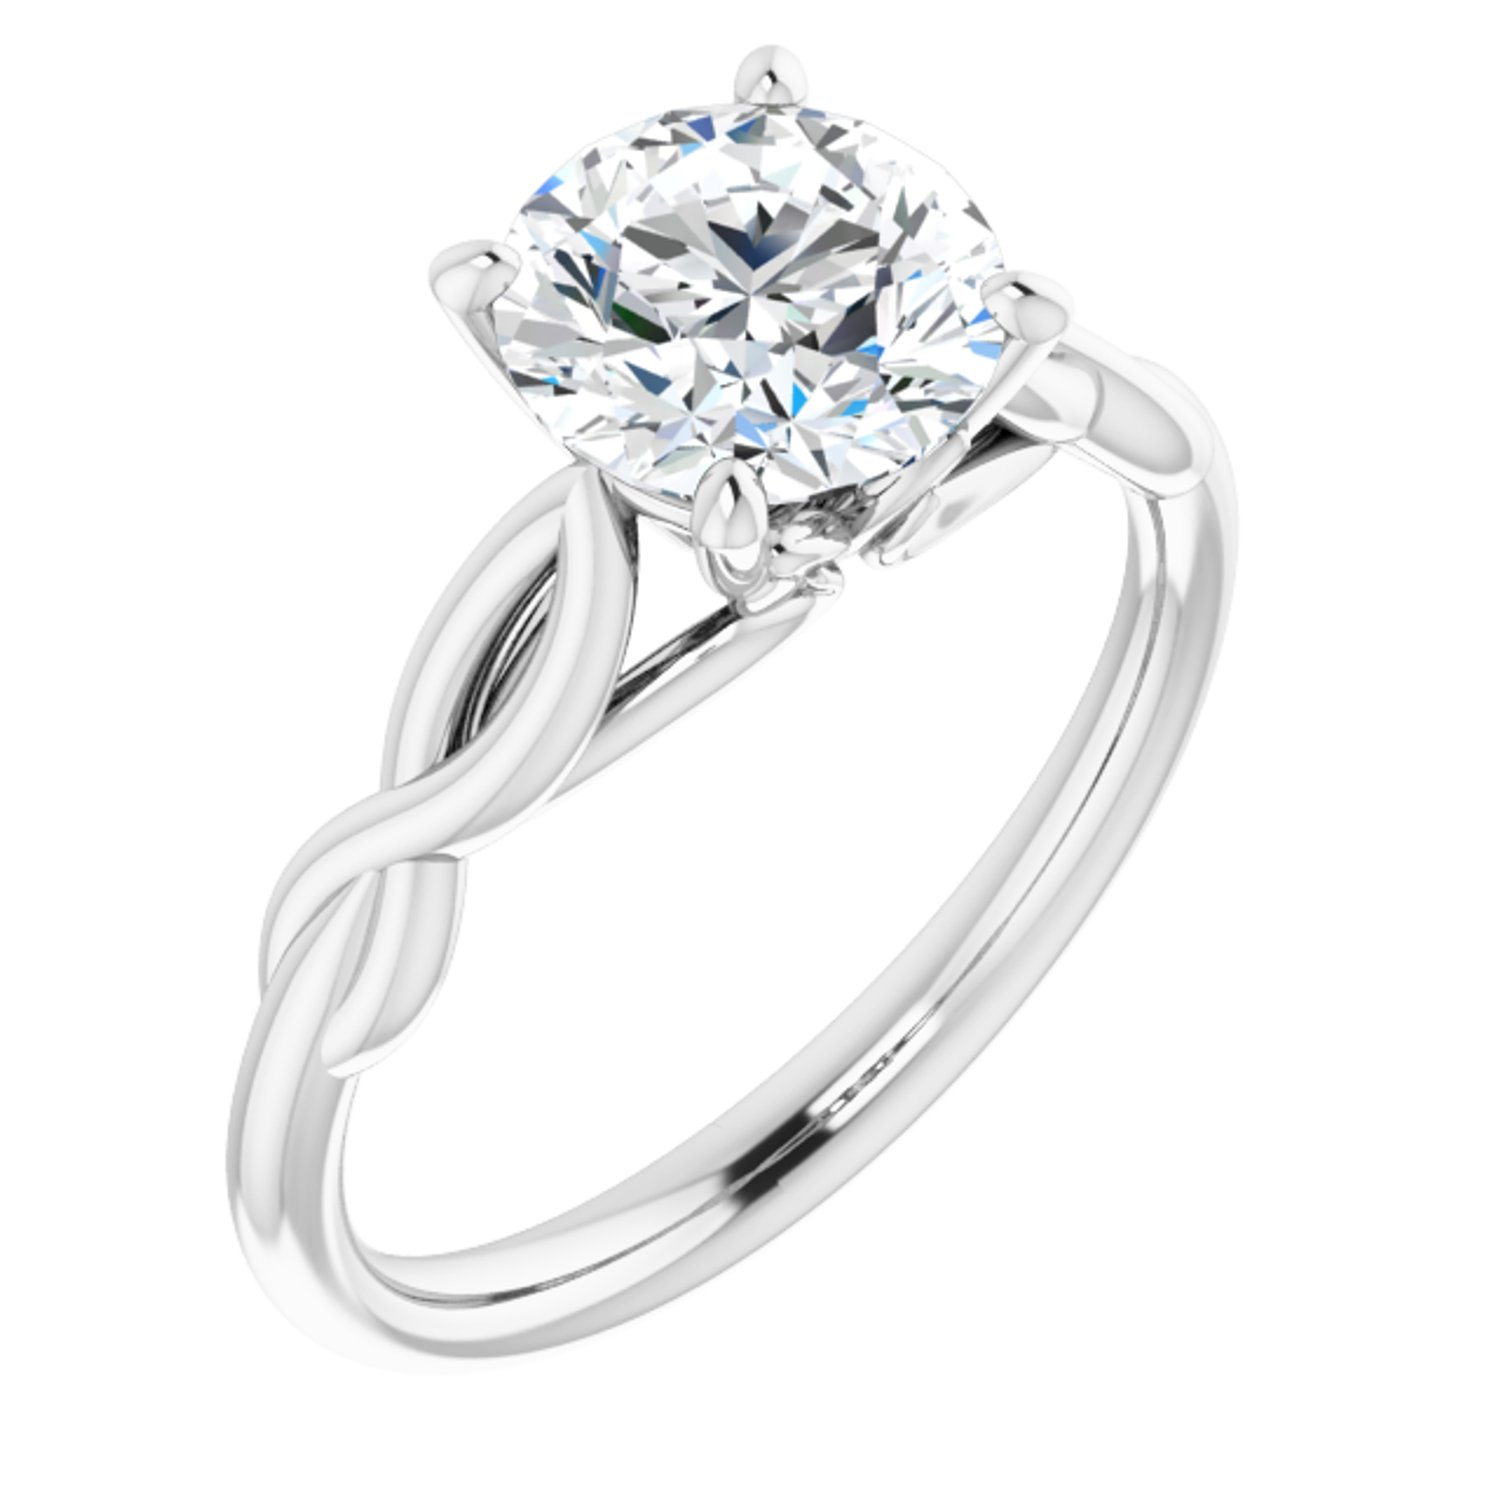 1 50 Carat Round Cut Forever One Created Moissanite Set In Solid Platinum Infinity Inspired Solitaire Engagement Ring Size 7 Walmart Canada